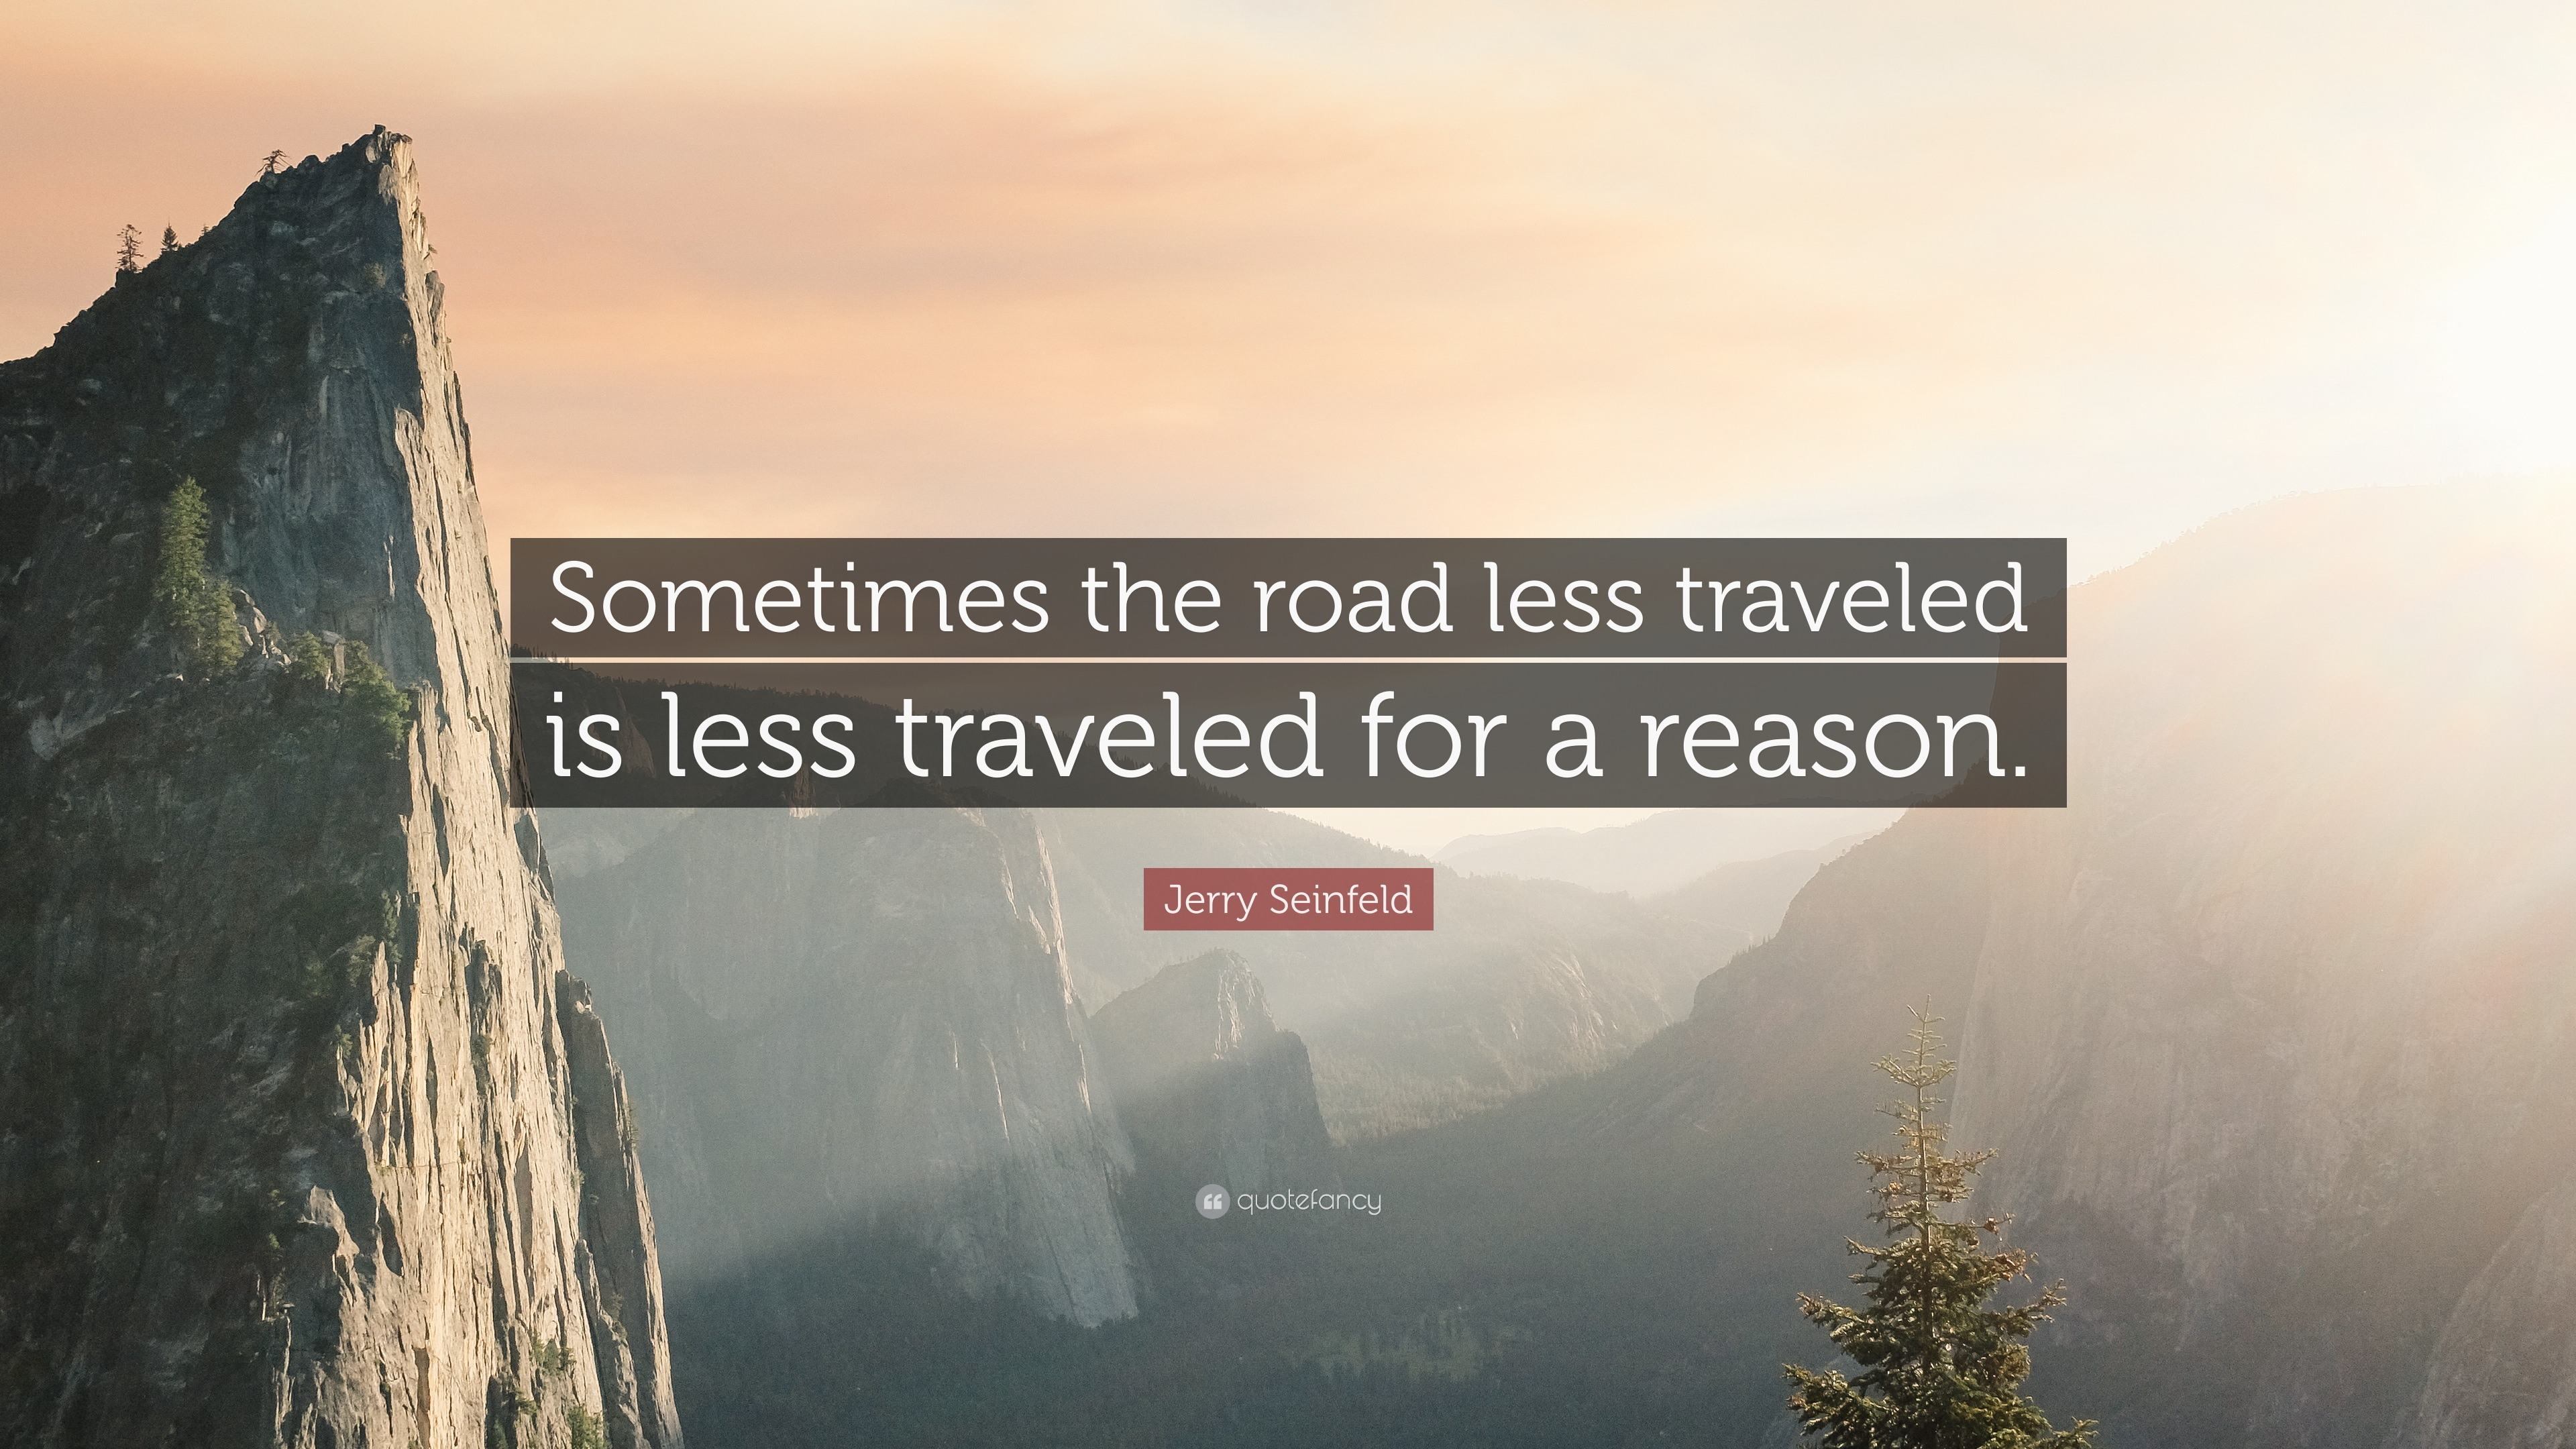 Sarcastic Quotes Sometimes The Road Less Traveled Is For A Reason